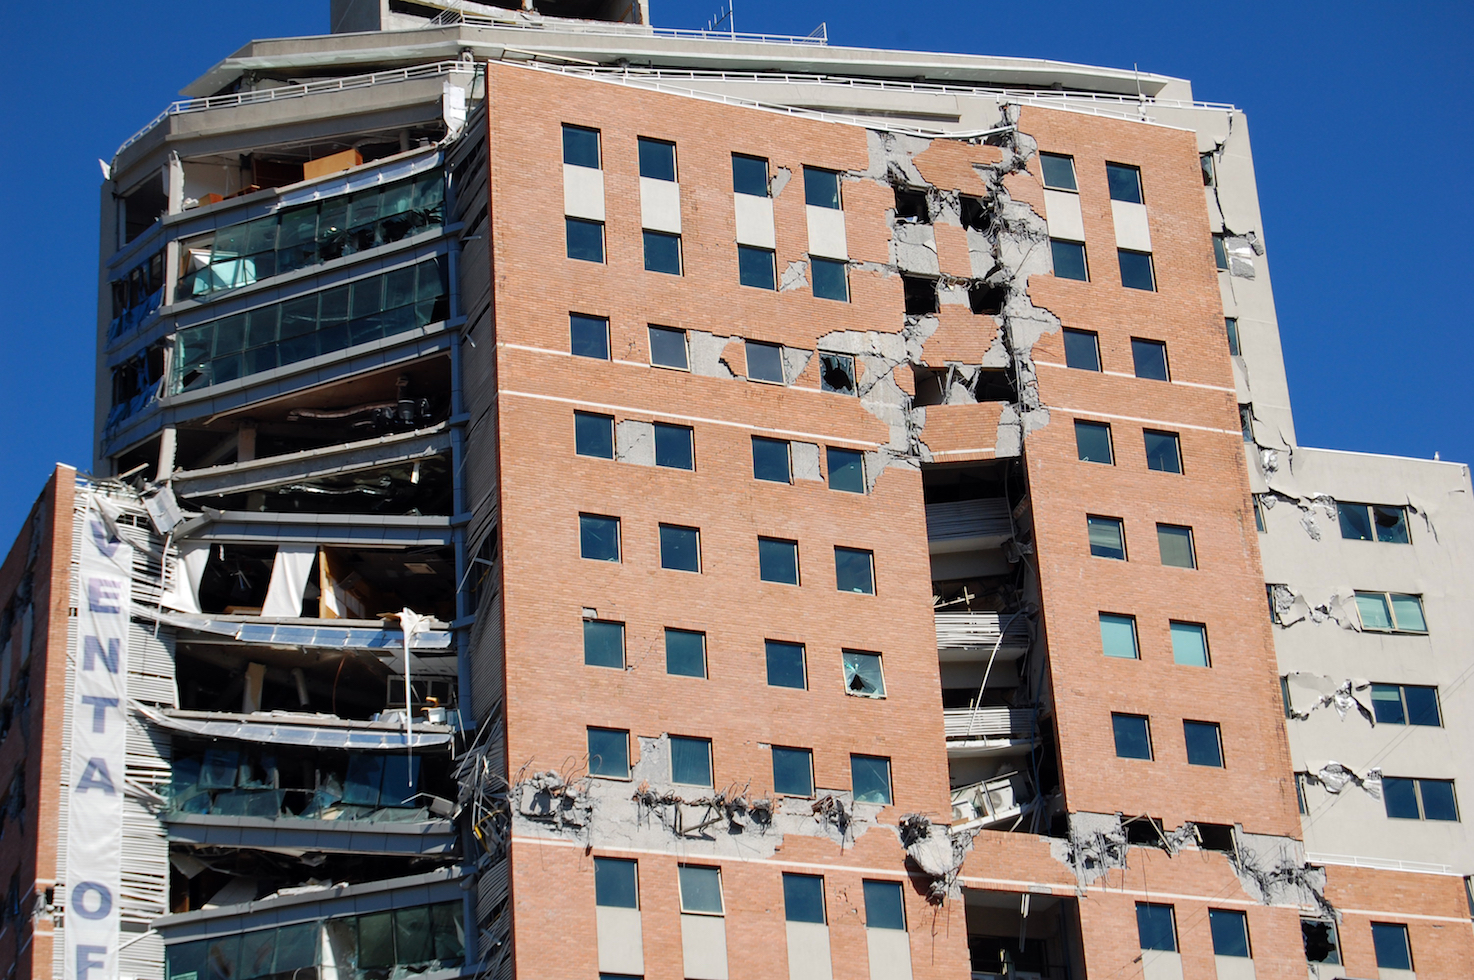 Researchers have created a super resilient, ductile spray coating that helps buildings keep structural integrity during major earthquakes.